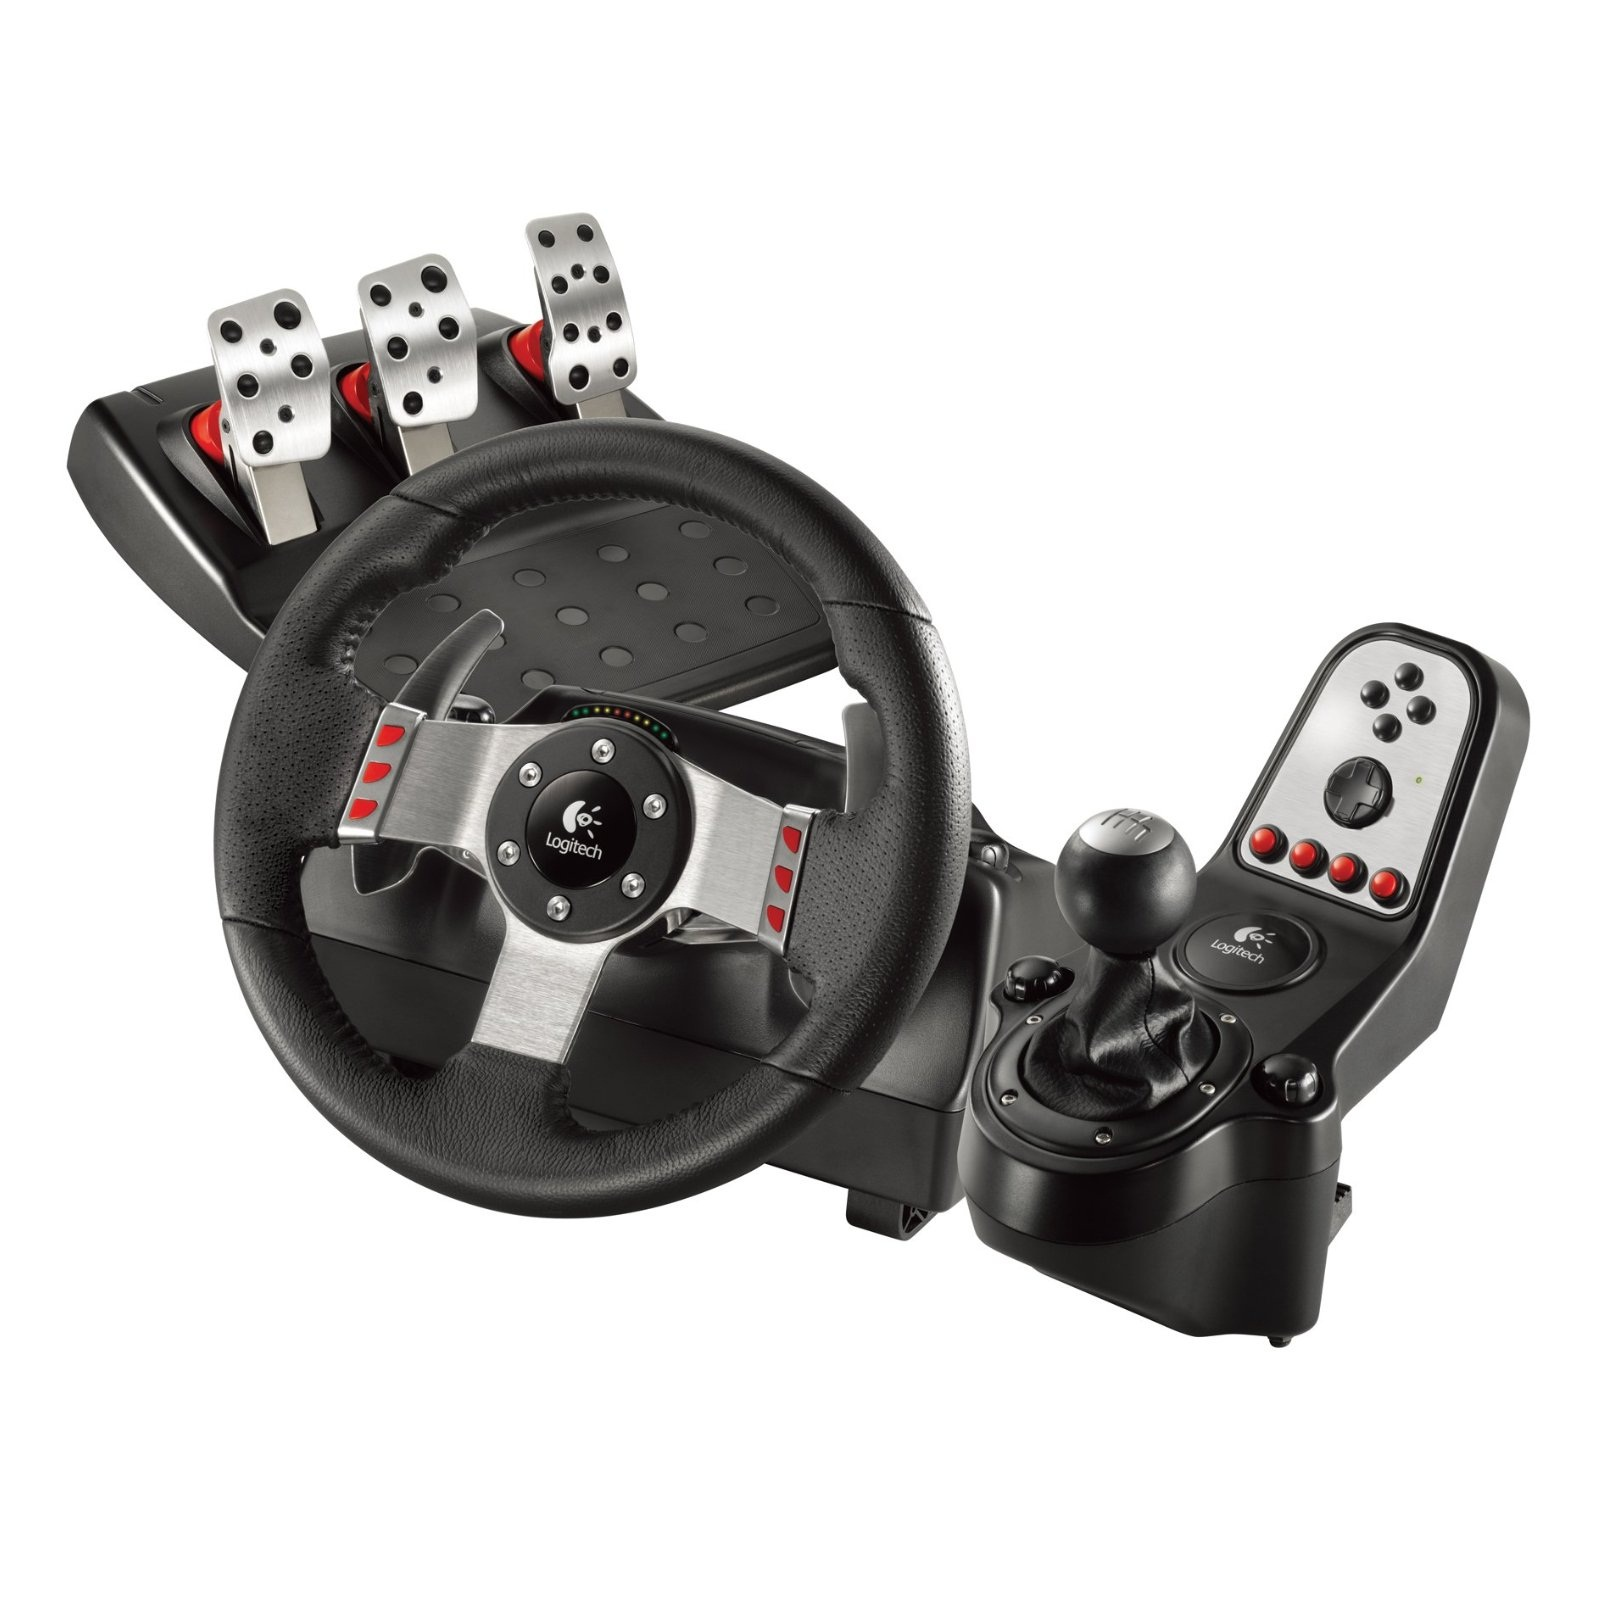 Vô lăng game Logitech G27 Racing Wheel